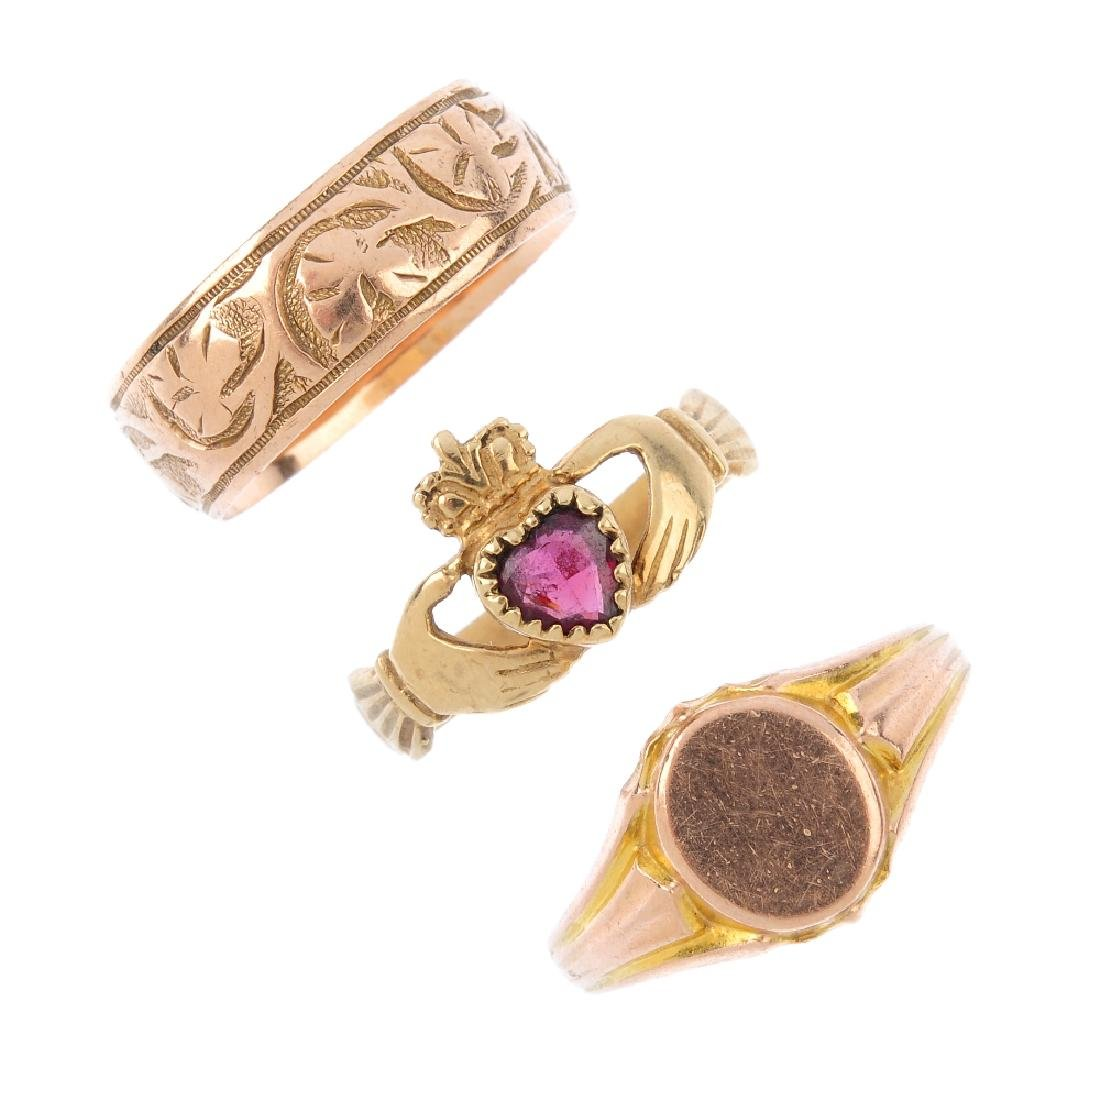 Three 9ct gold rings. To include an early 20th century